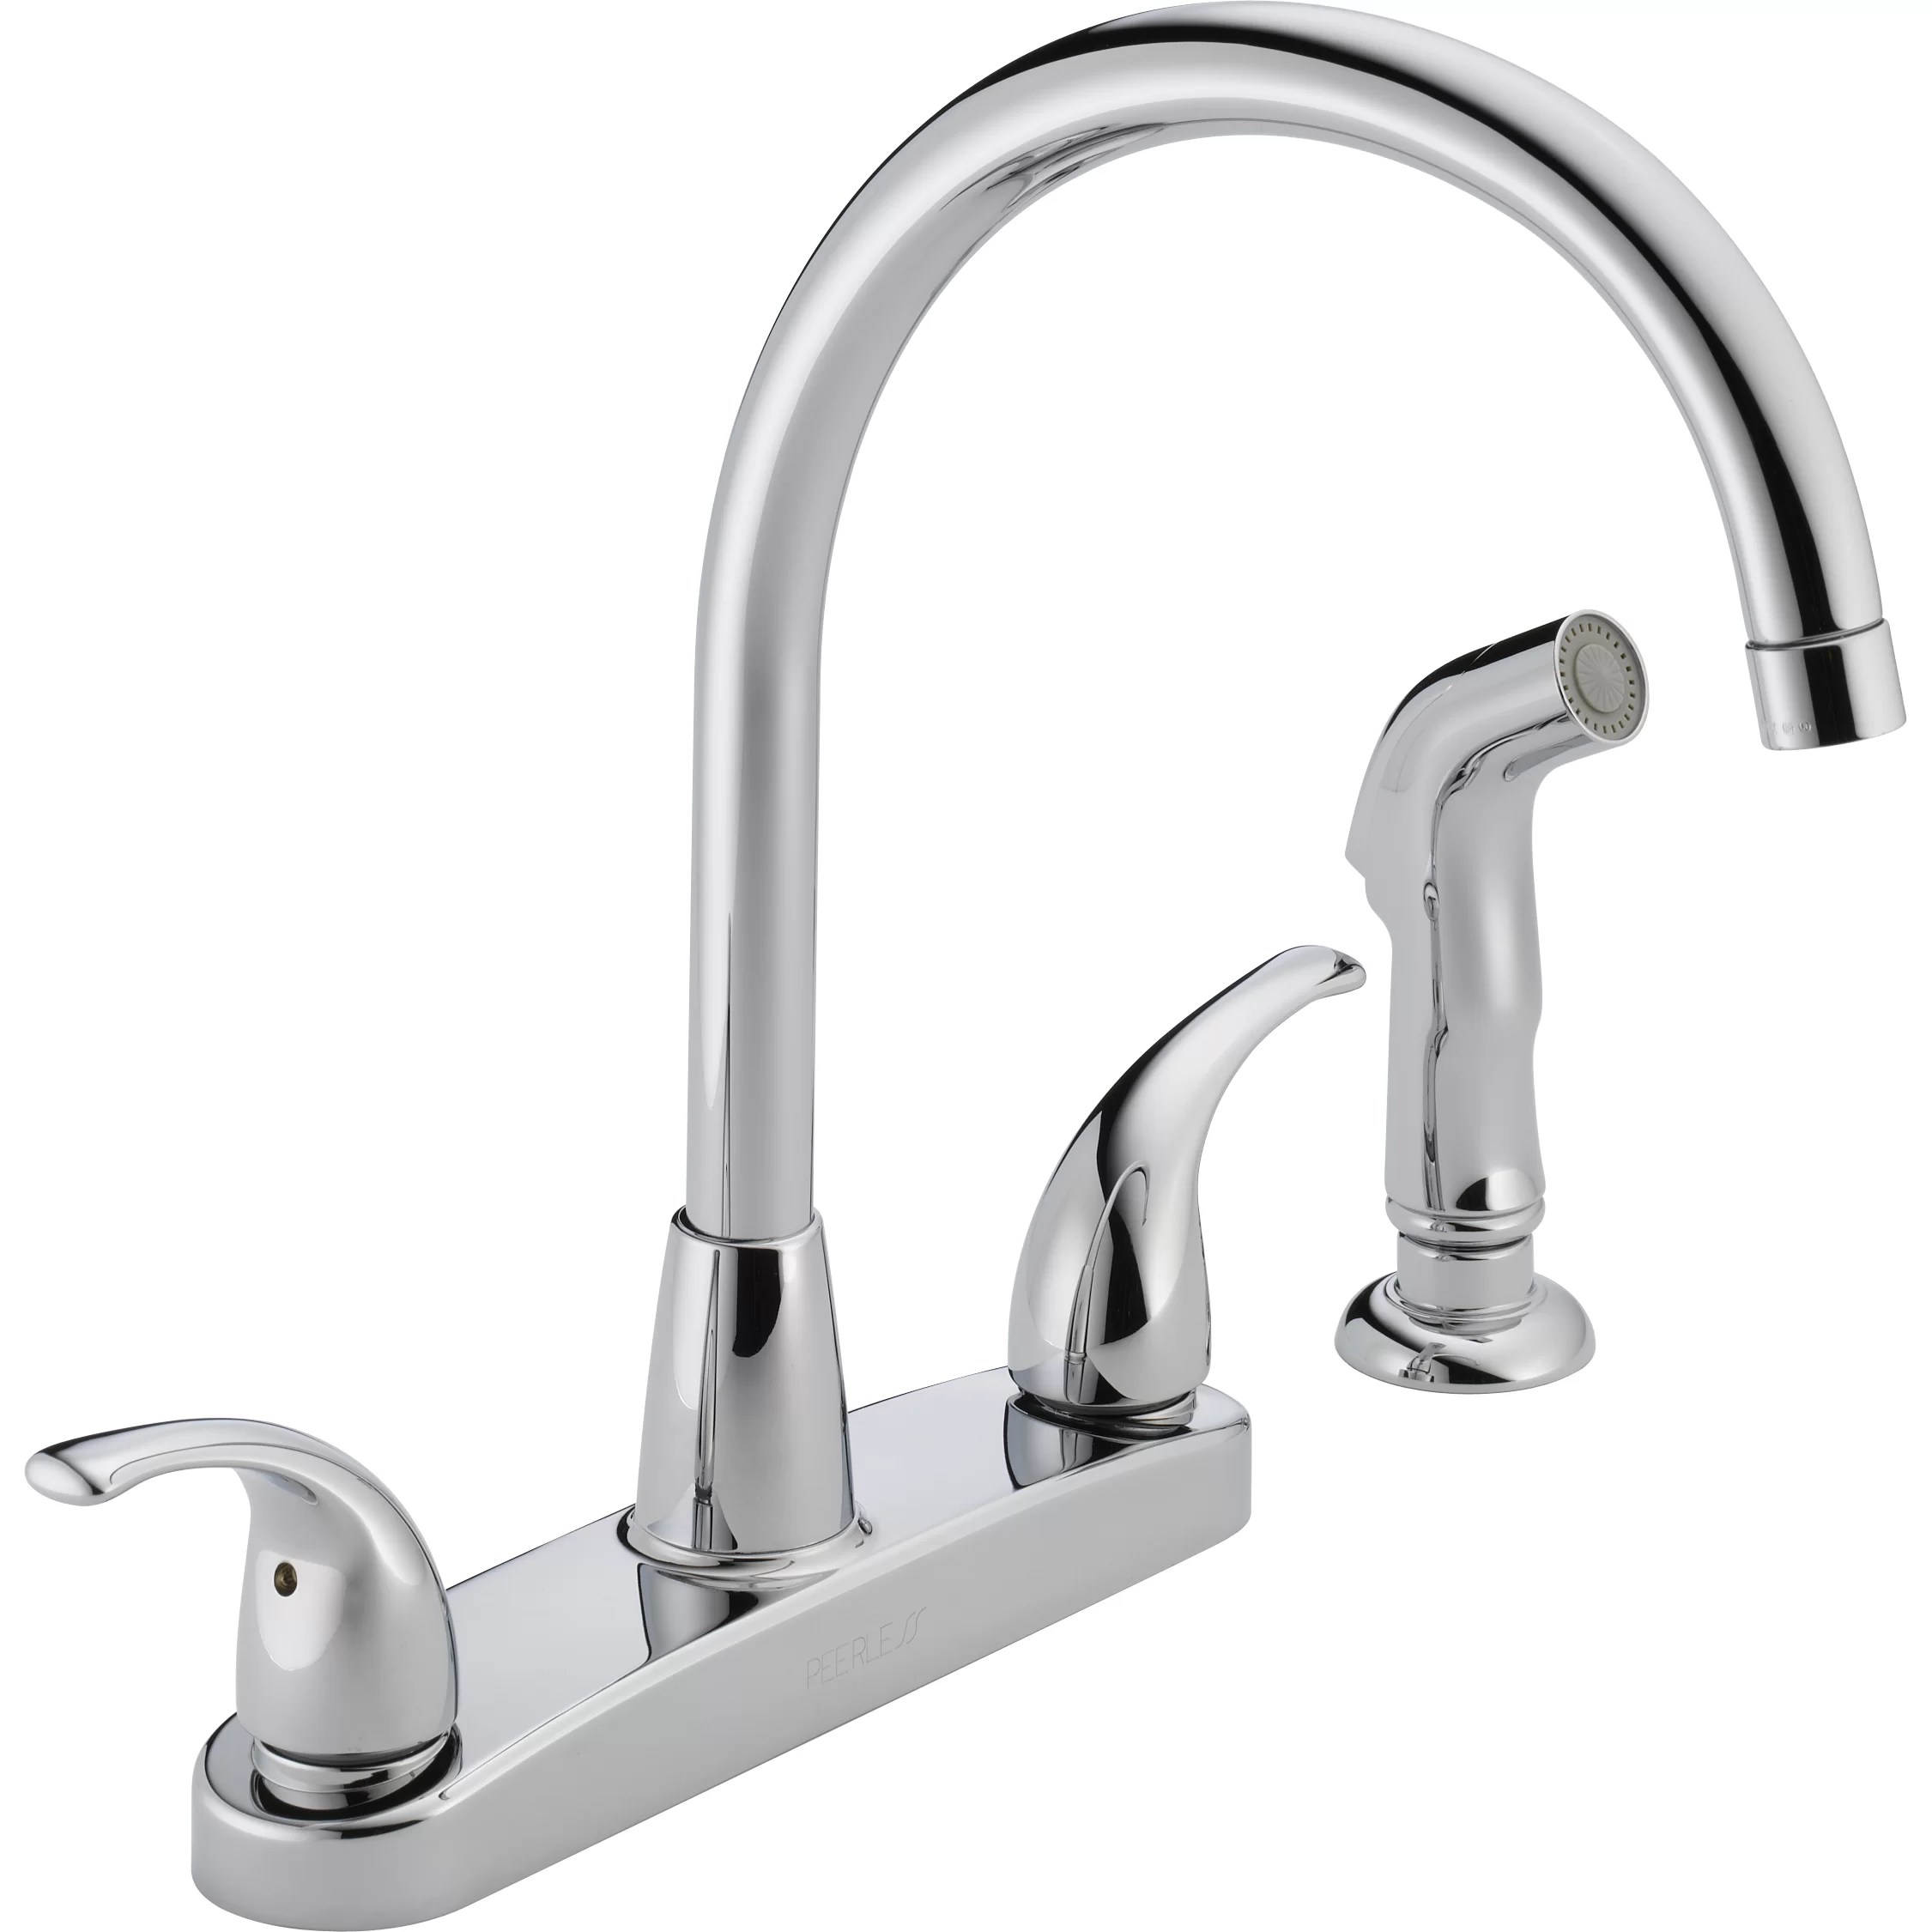 4 hole kitchen faucets c a~ widespread kitchen faucet Two Handle Centerset Kitchen Faucet with Side Spray